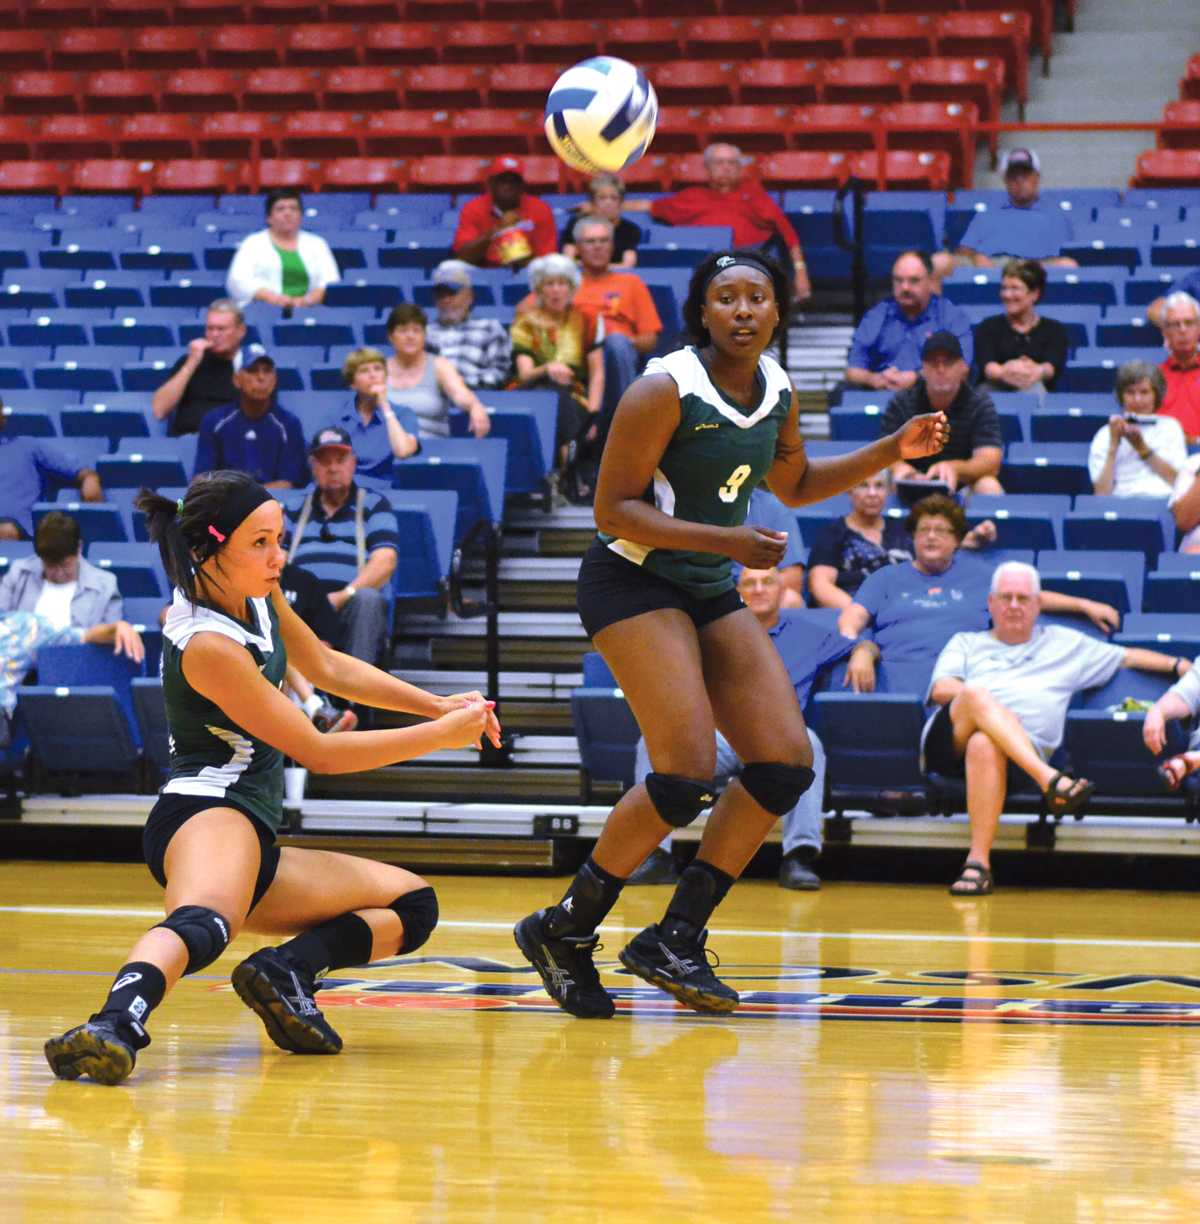 Crusader photo/Maria Lara Carolina Gasparini digs the ball in an effort to return a kill attempt from the Hutchinson Blue Dragons. Gasparini ended the night Sept. 17 with nine kills and 13 digs.